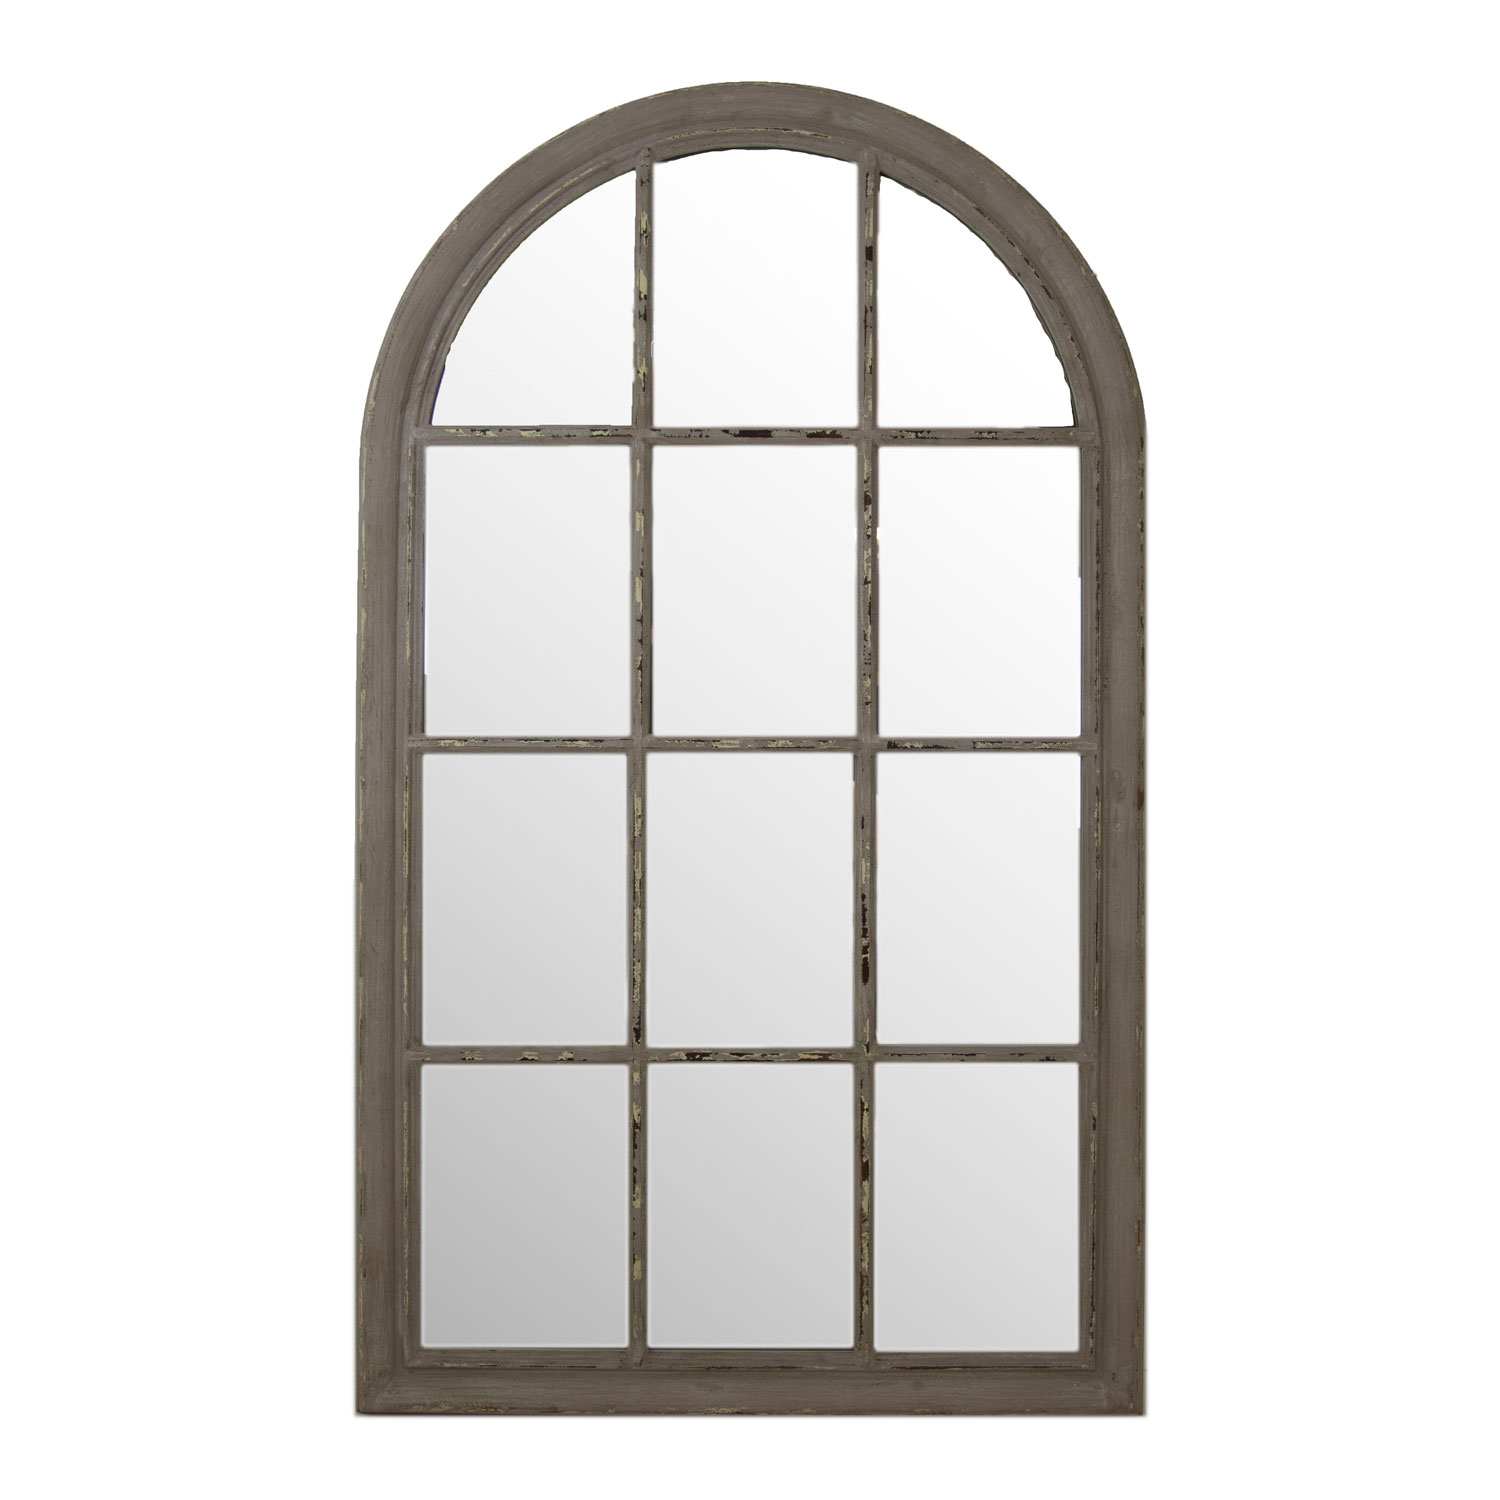 Runnymede 3 panel arch window mirror for How to decorate an arched window